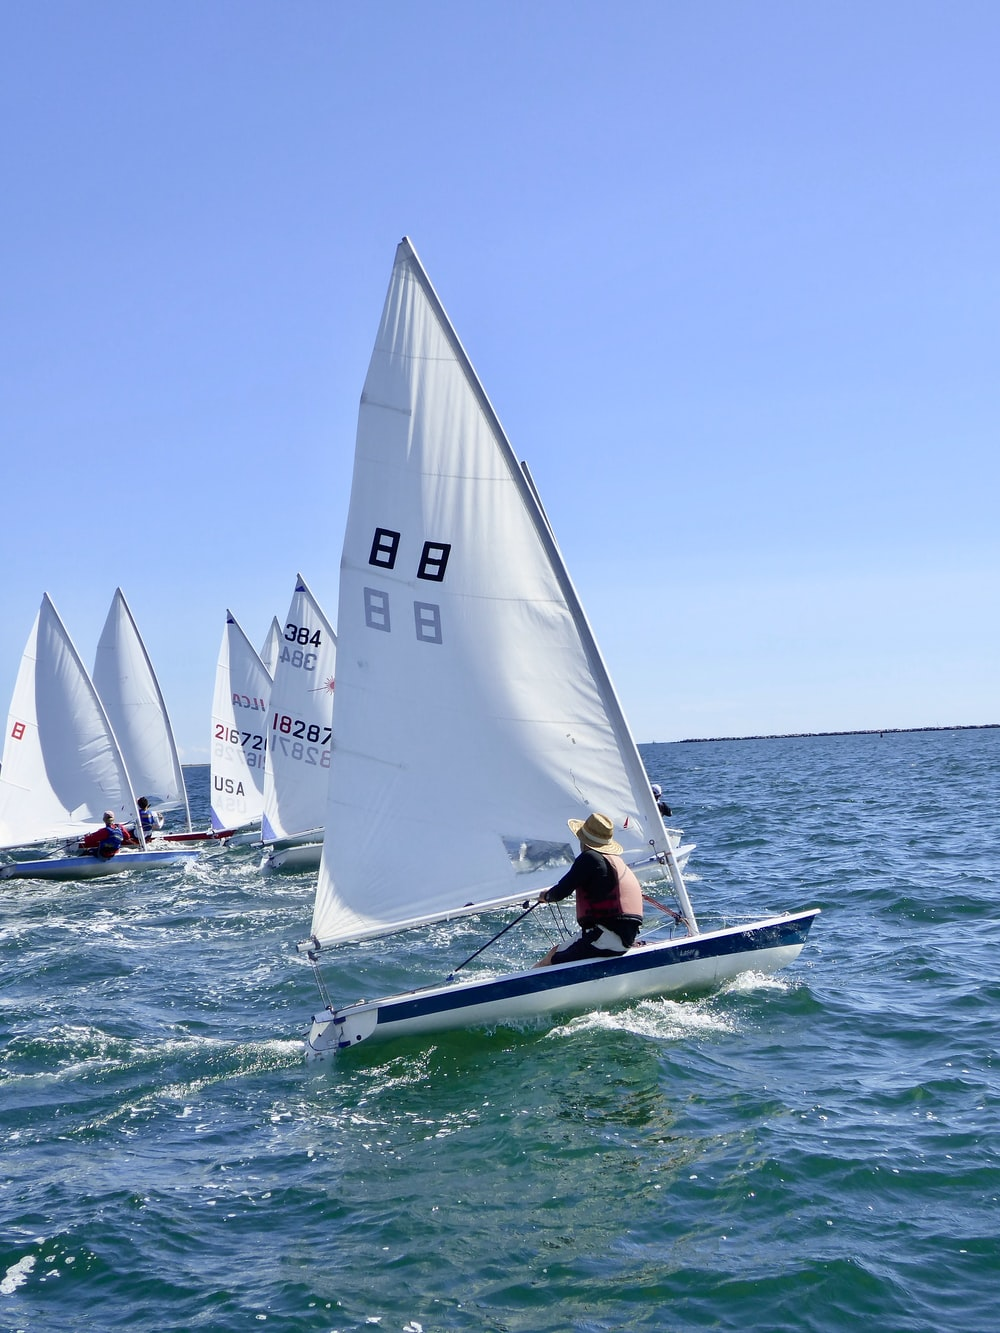 2 white sail boats on sea during daytime